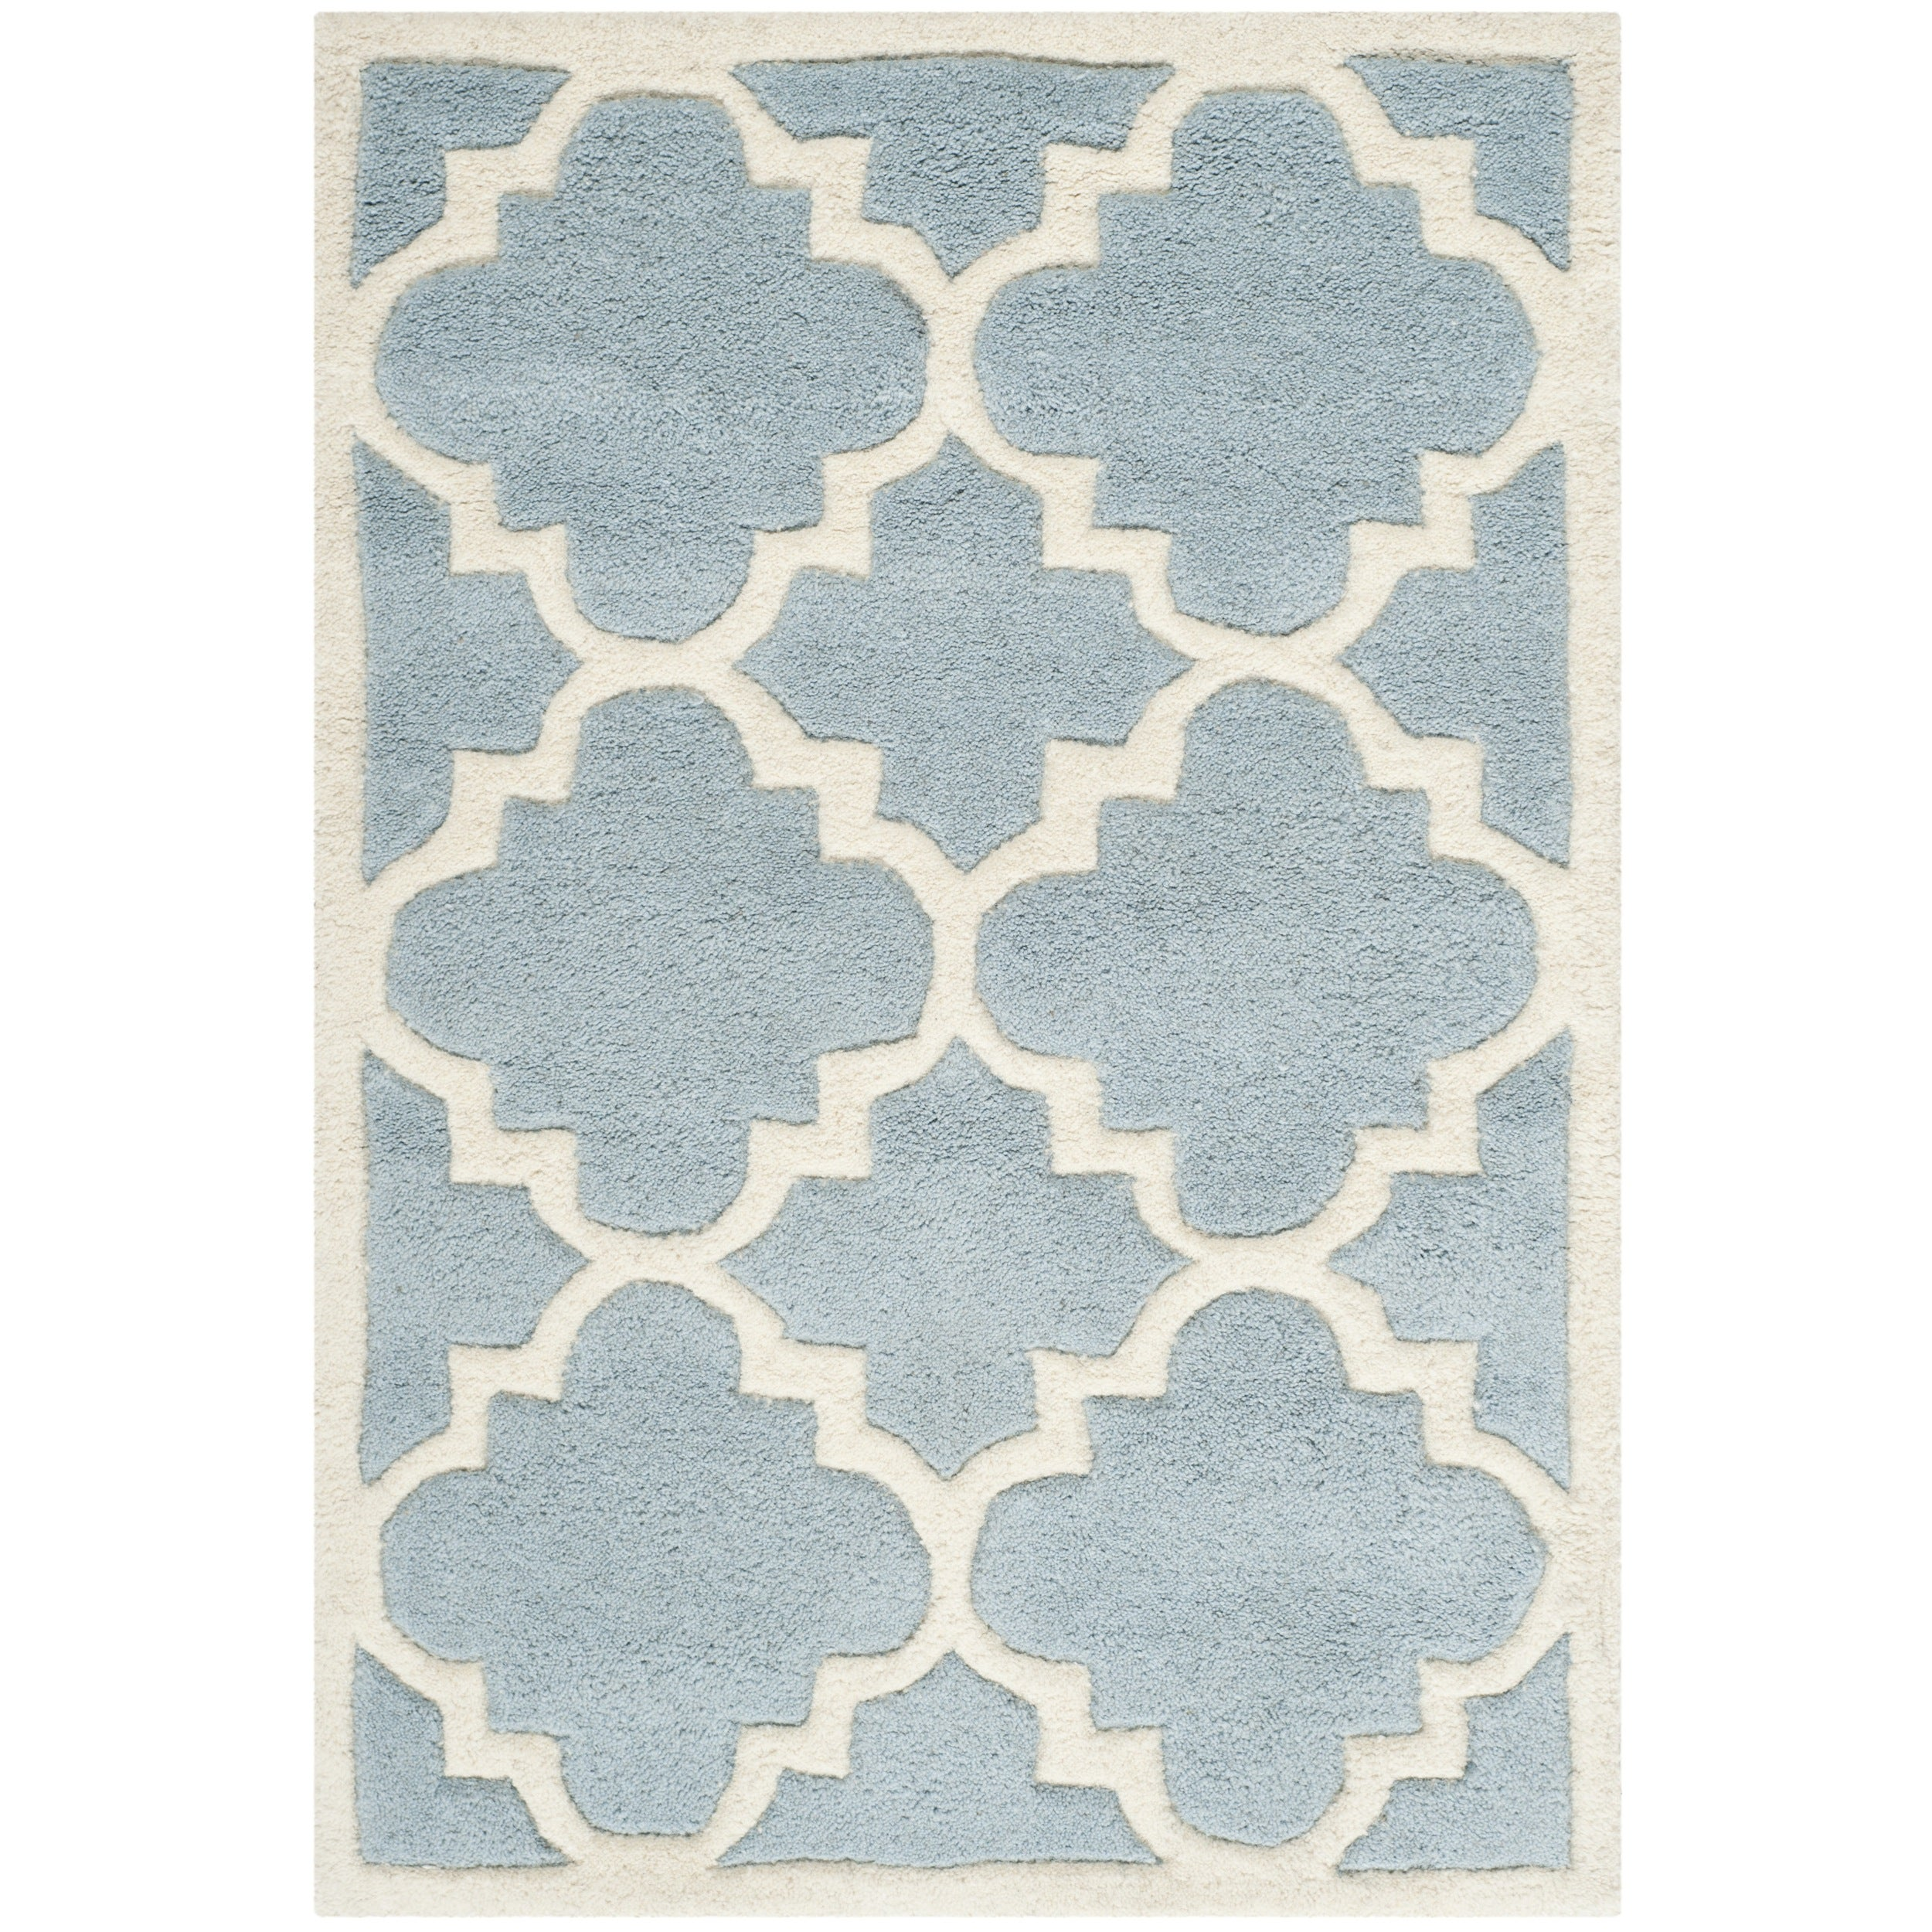 Safavieh Handmade Moroccan Chatham Contemporary Blue Wool Rug (2' x 3')